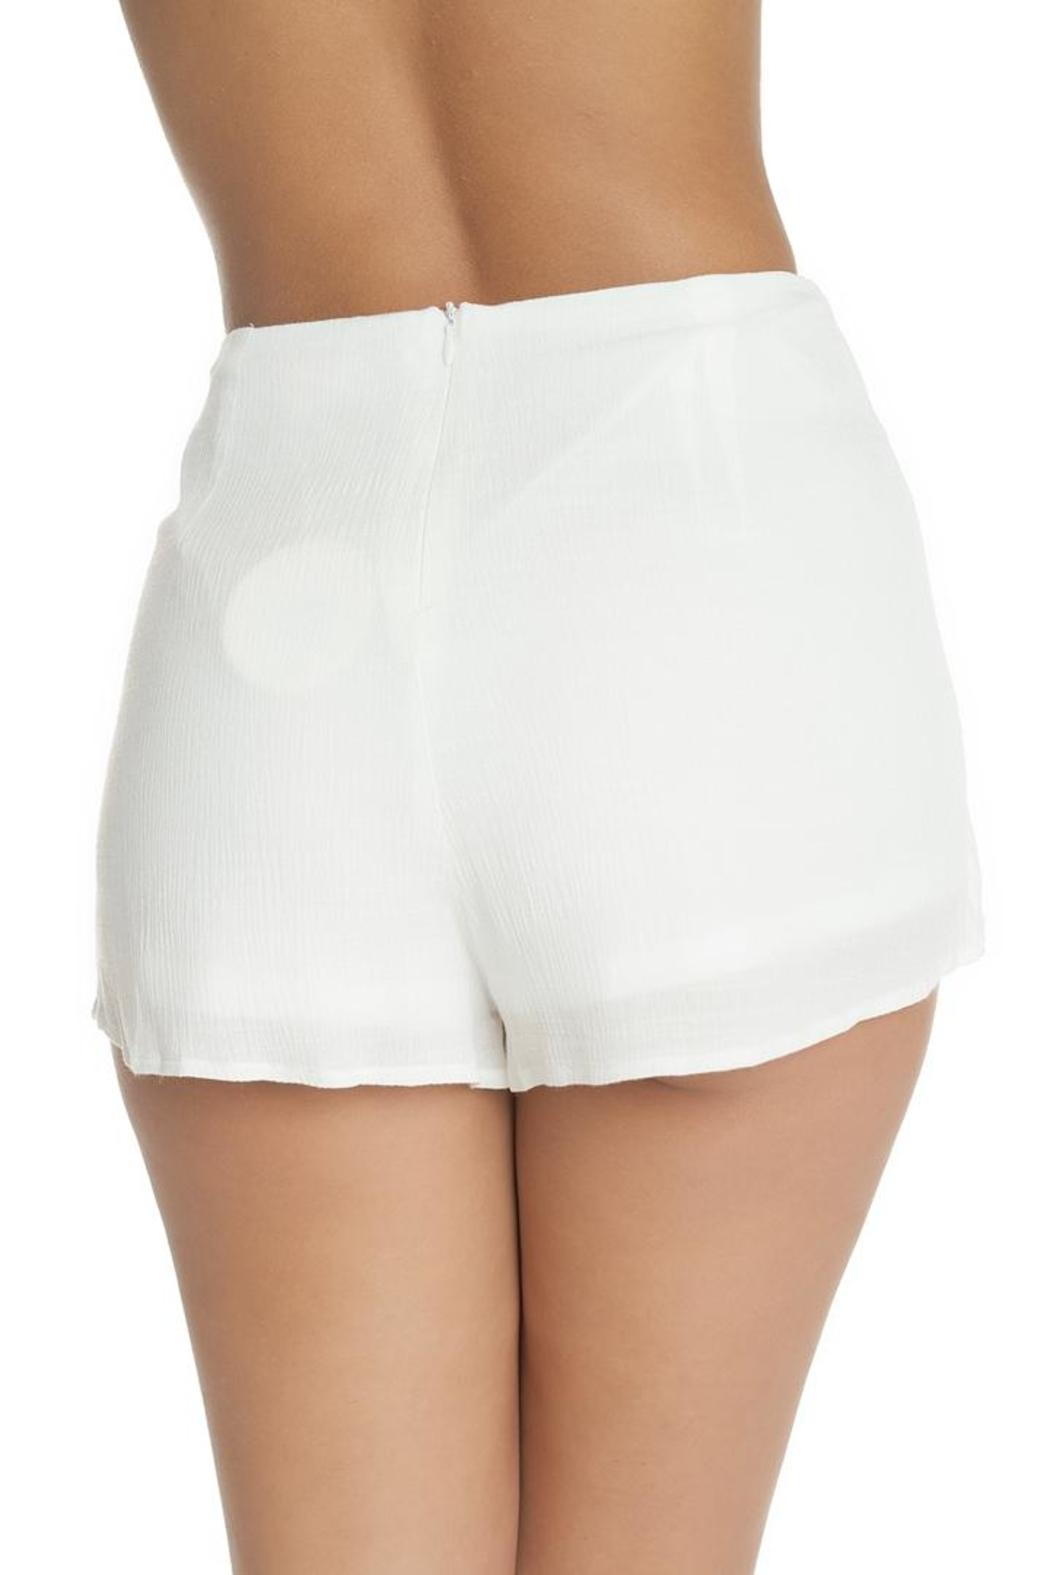 luxxel White Crinkle Shorts - Side Cropped Image